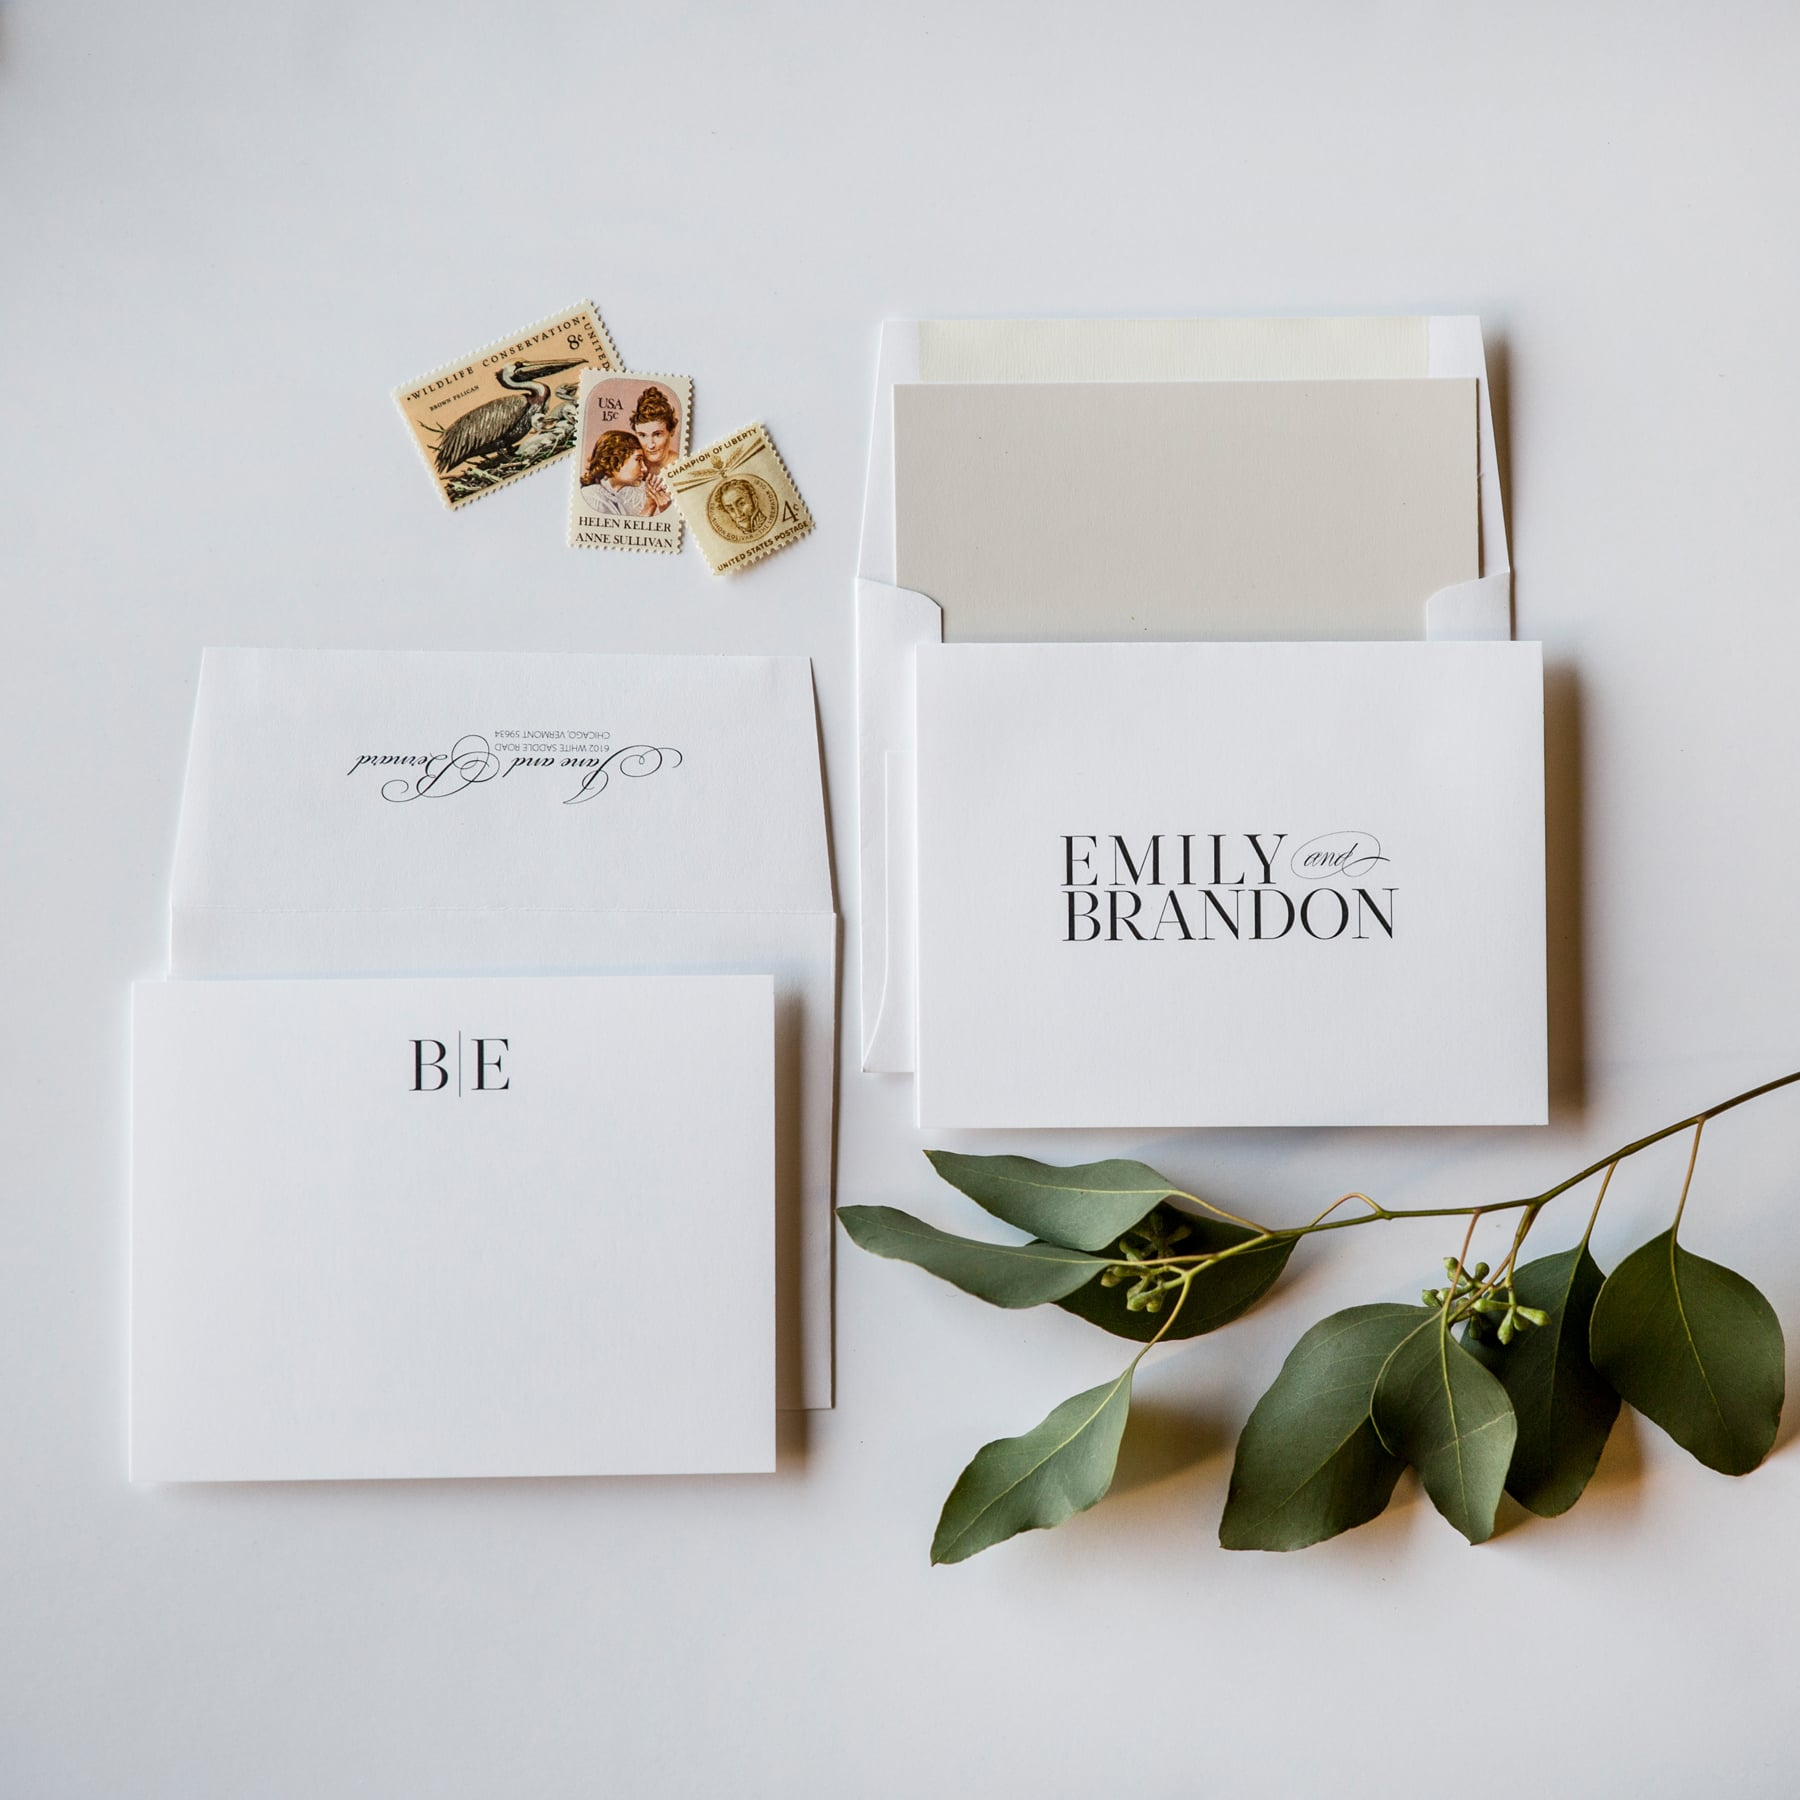 Champagne Press Couple's Stationery